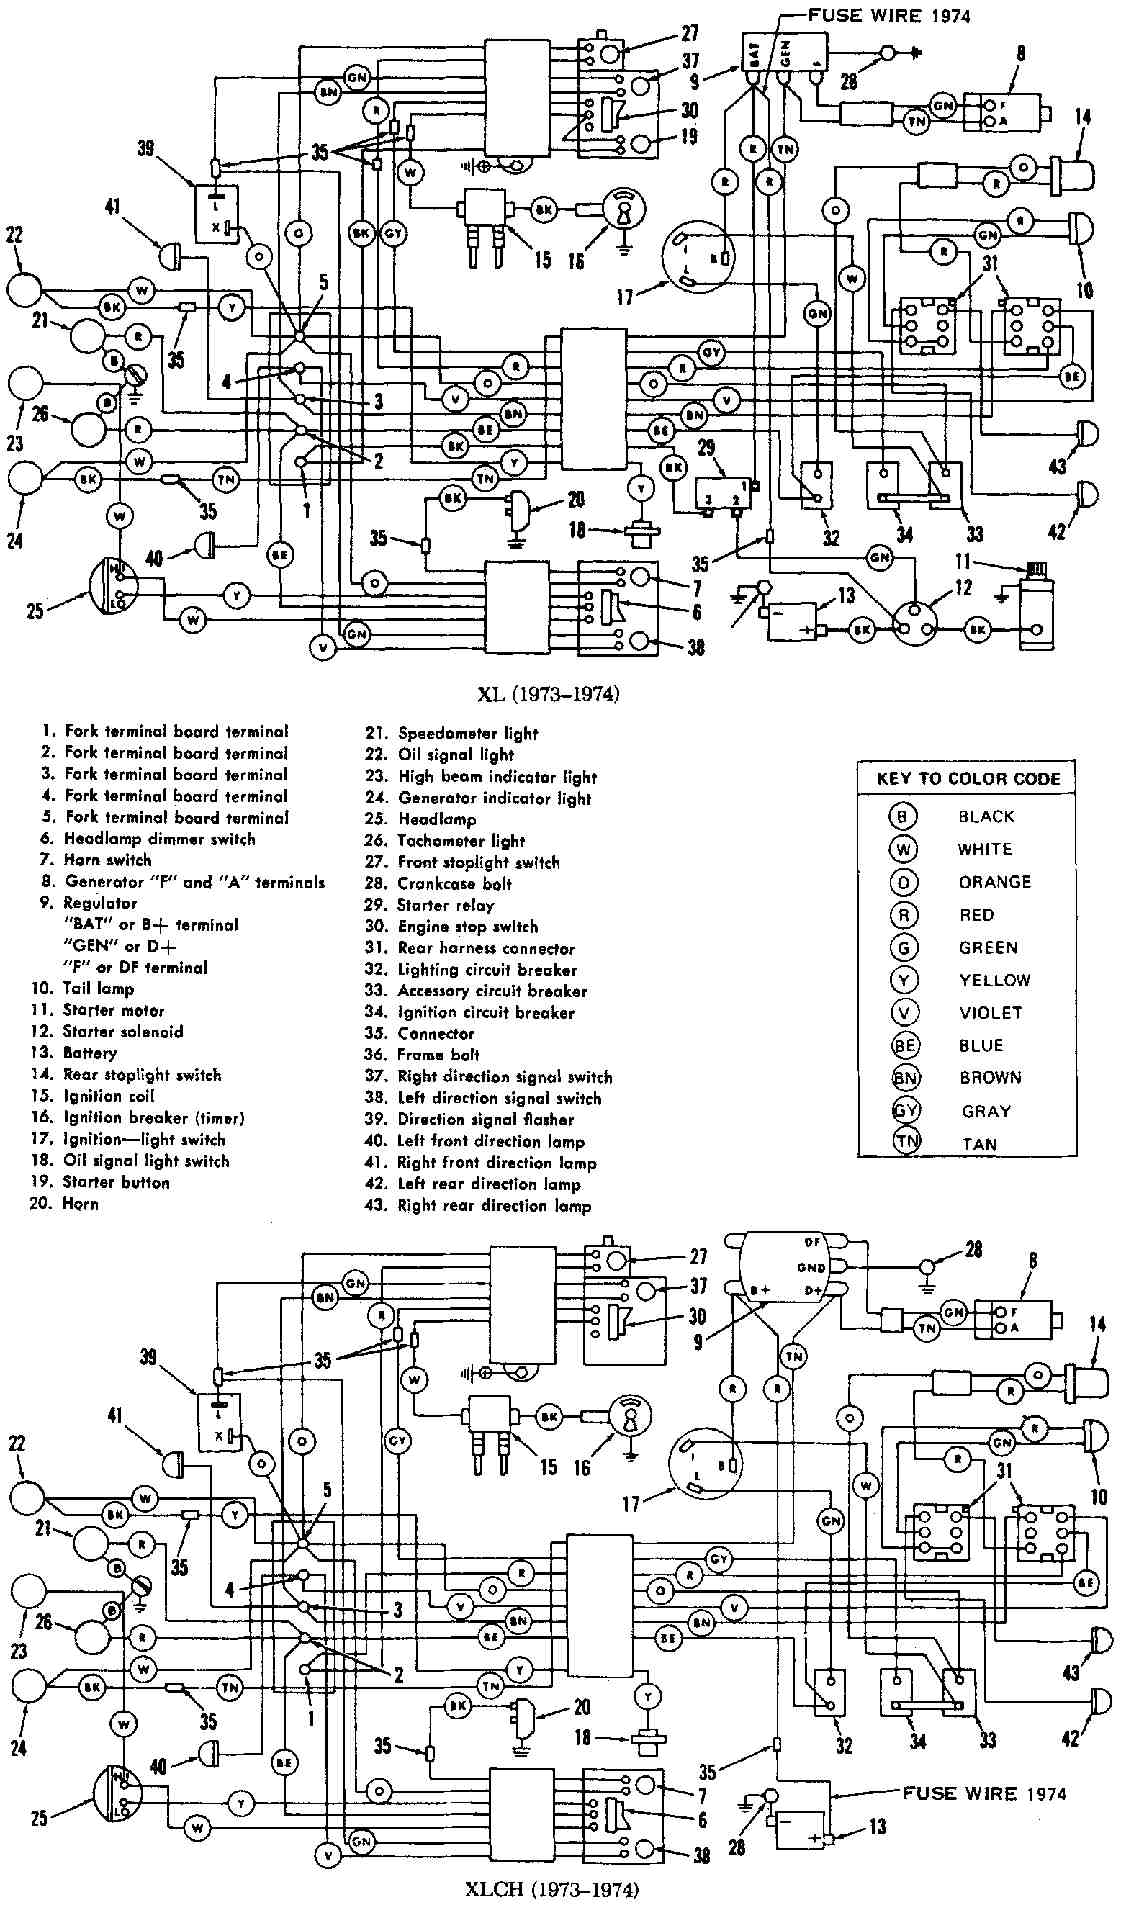 Flhr Wiring Diagram Online Schematics 2011 Victory Vision Harle Davidson Engine Diagrams Trusted Electric Motor 1973 Shovelhead